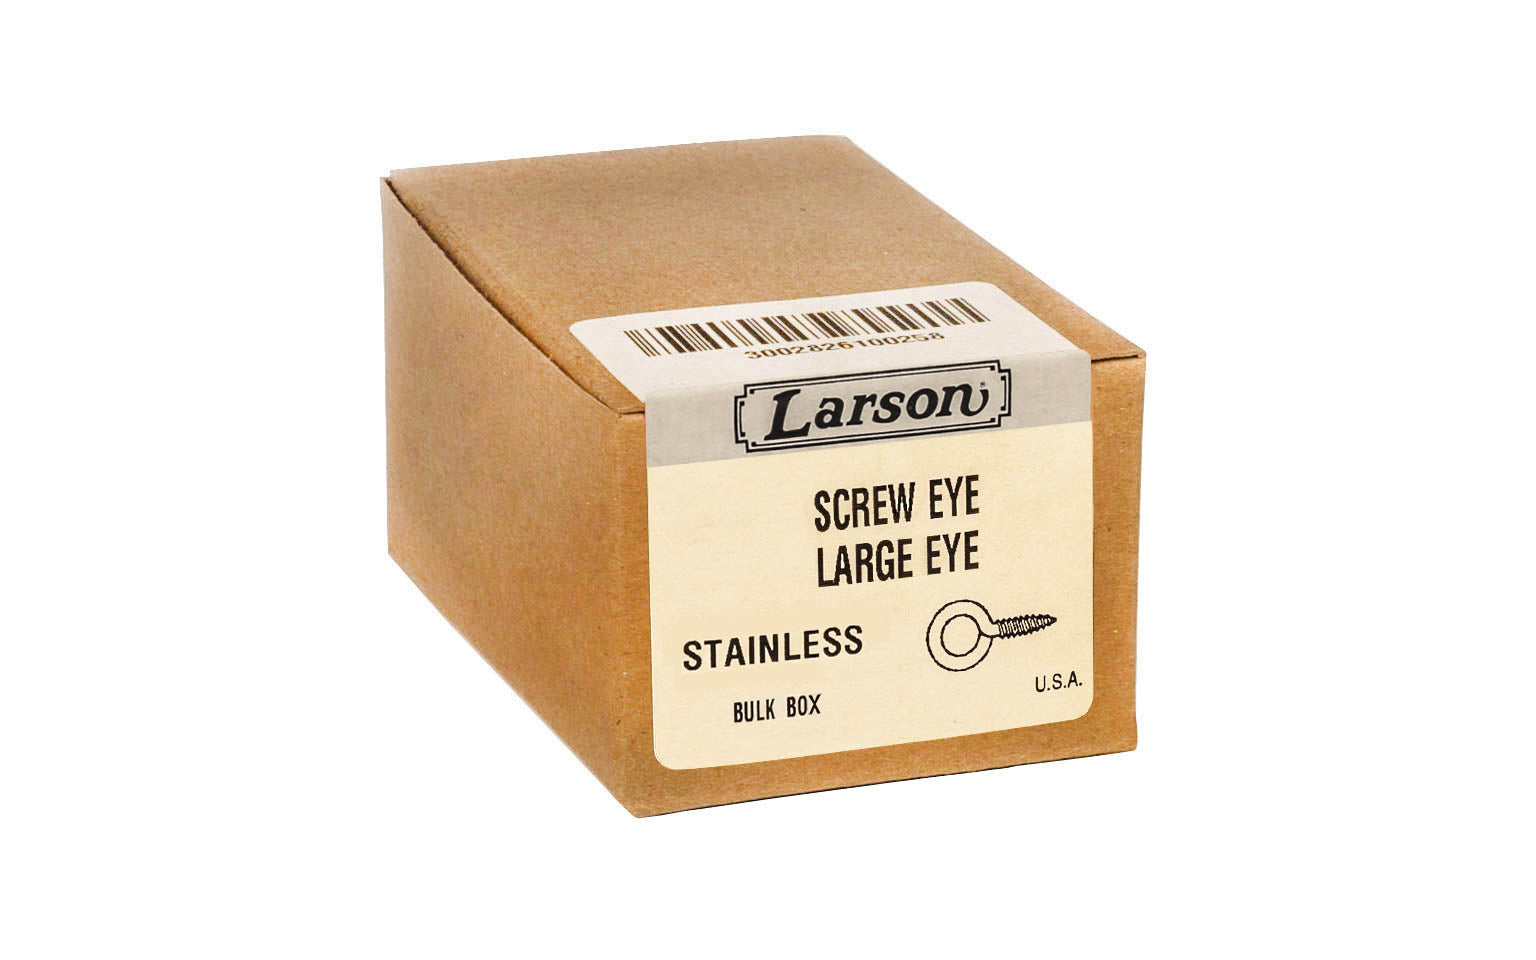 Bulk Box of Stainless Steel Screw Eyes ~ Large Eye - Made in USA